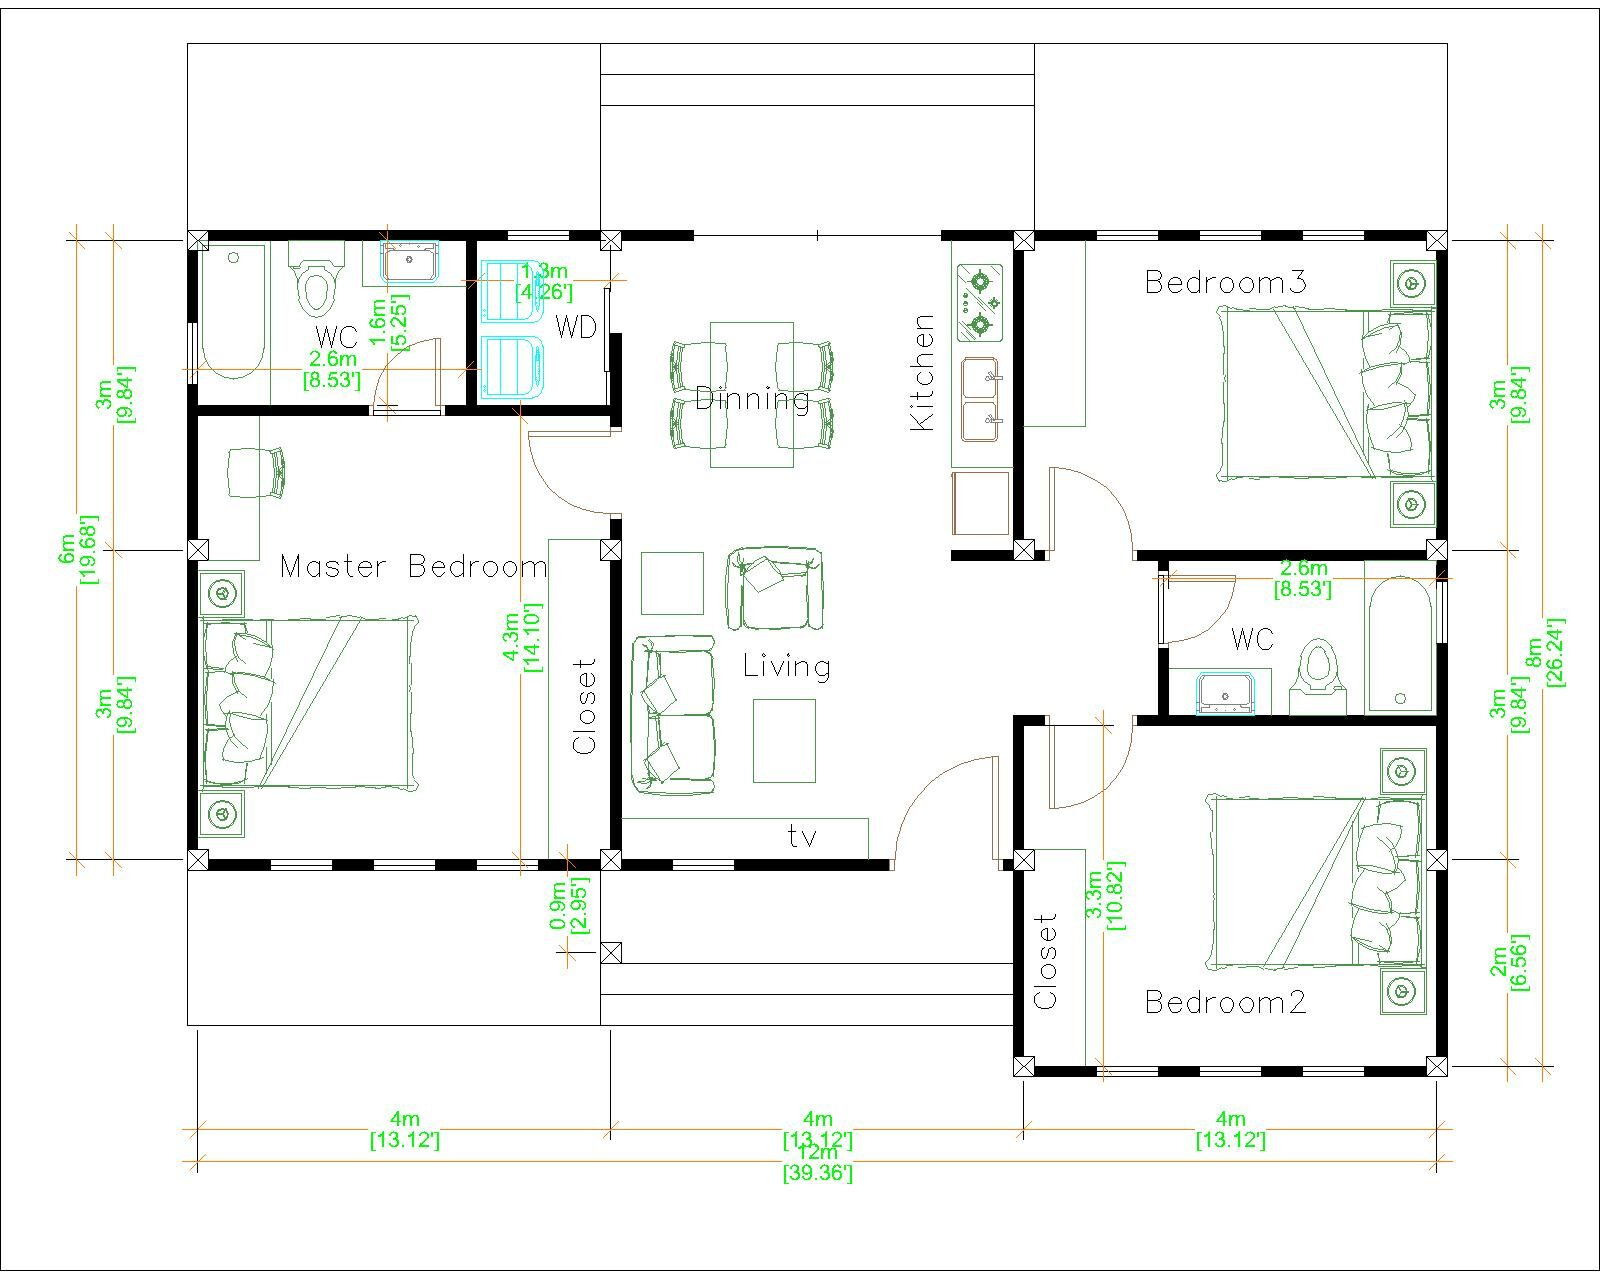 Modern Farmhouse Designs 12x8 Meters 40x26 Feet Layout floor plan